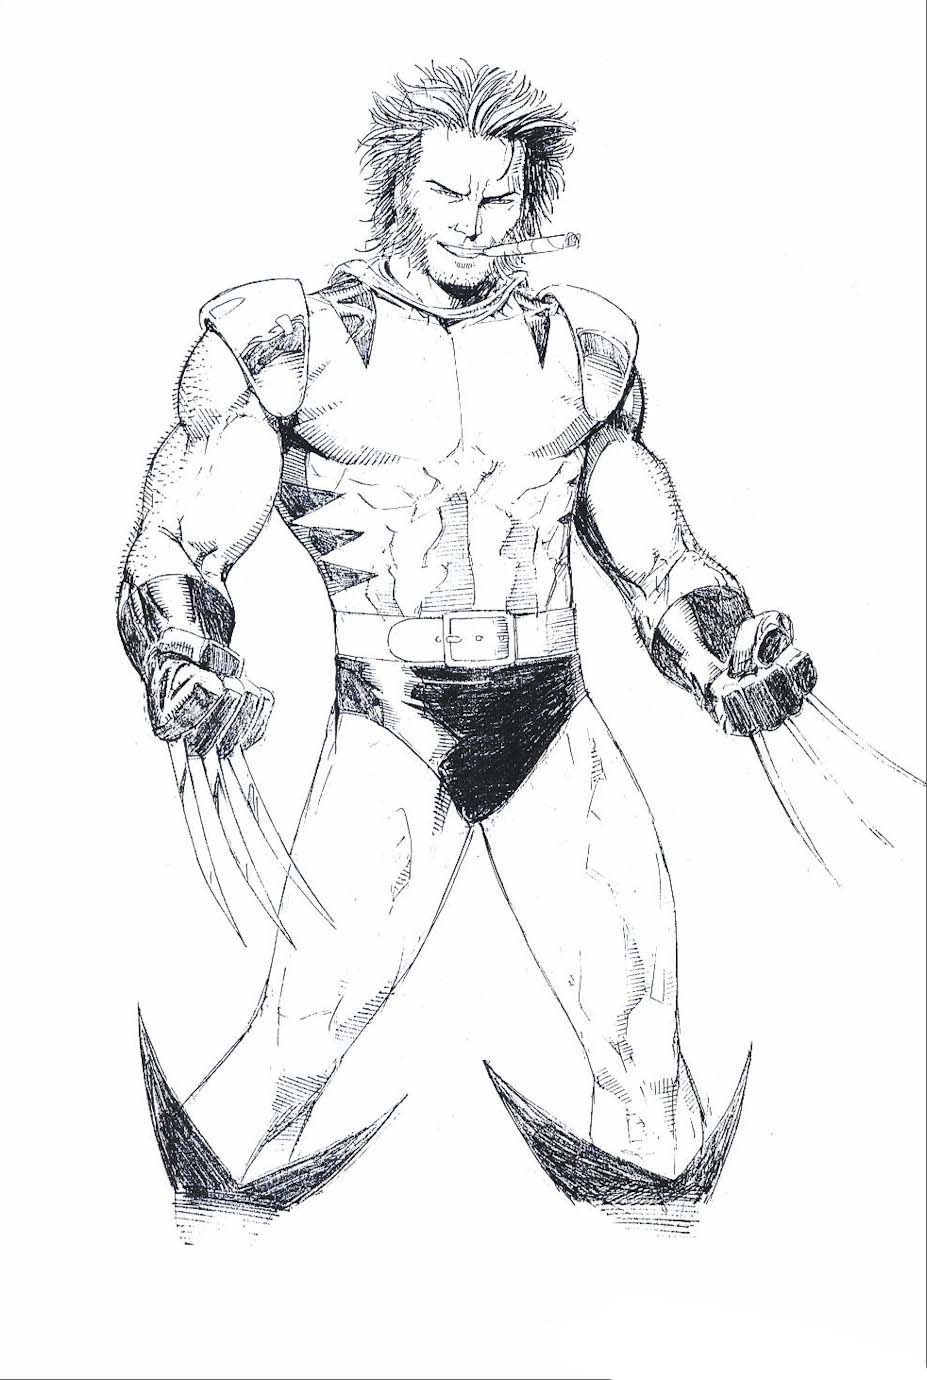 X Men Coloring Sketch Free Download Http Colorasketch Com X Men Coloring Sketch Free Download Animal Coloring Pages Cartoon Coloring Pages Superhero Coloring